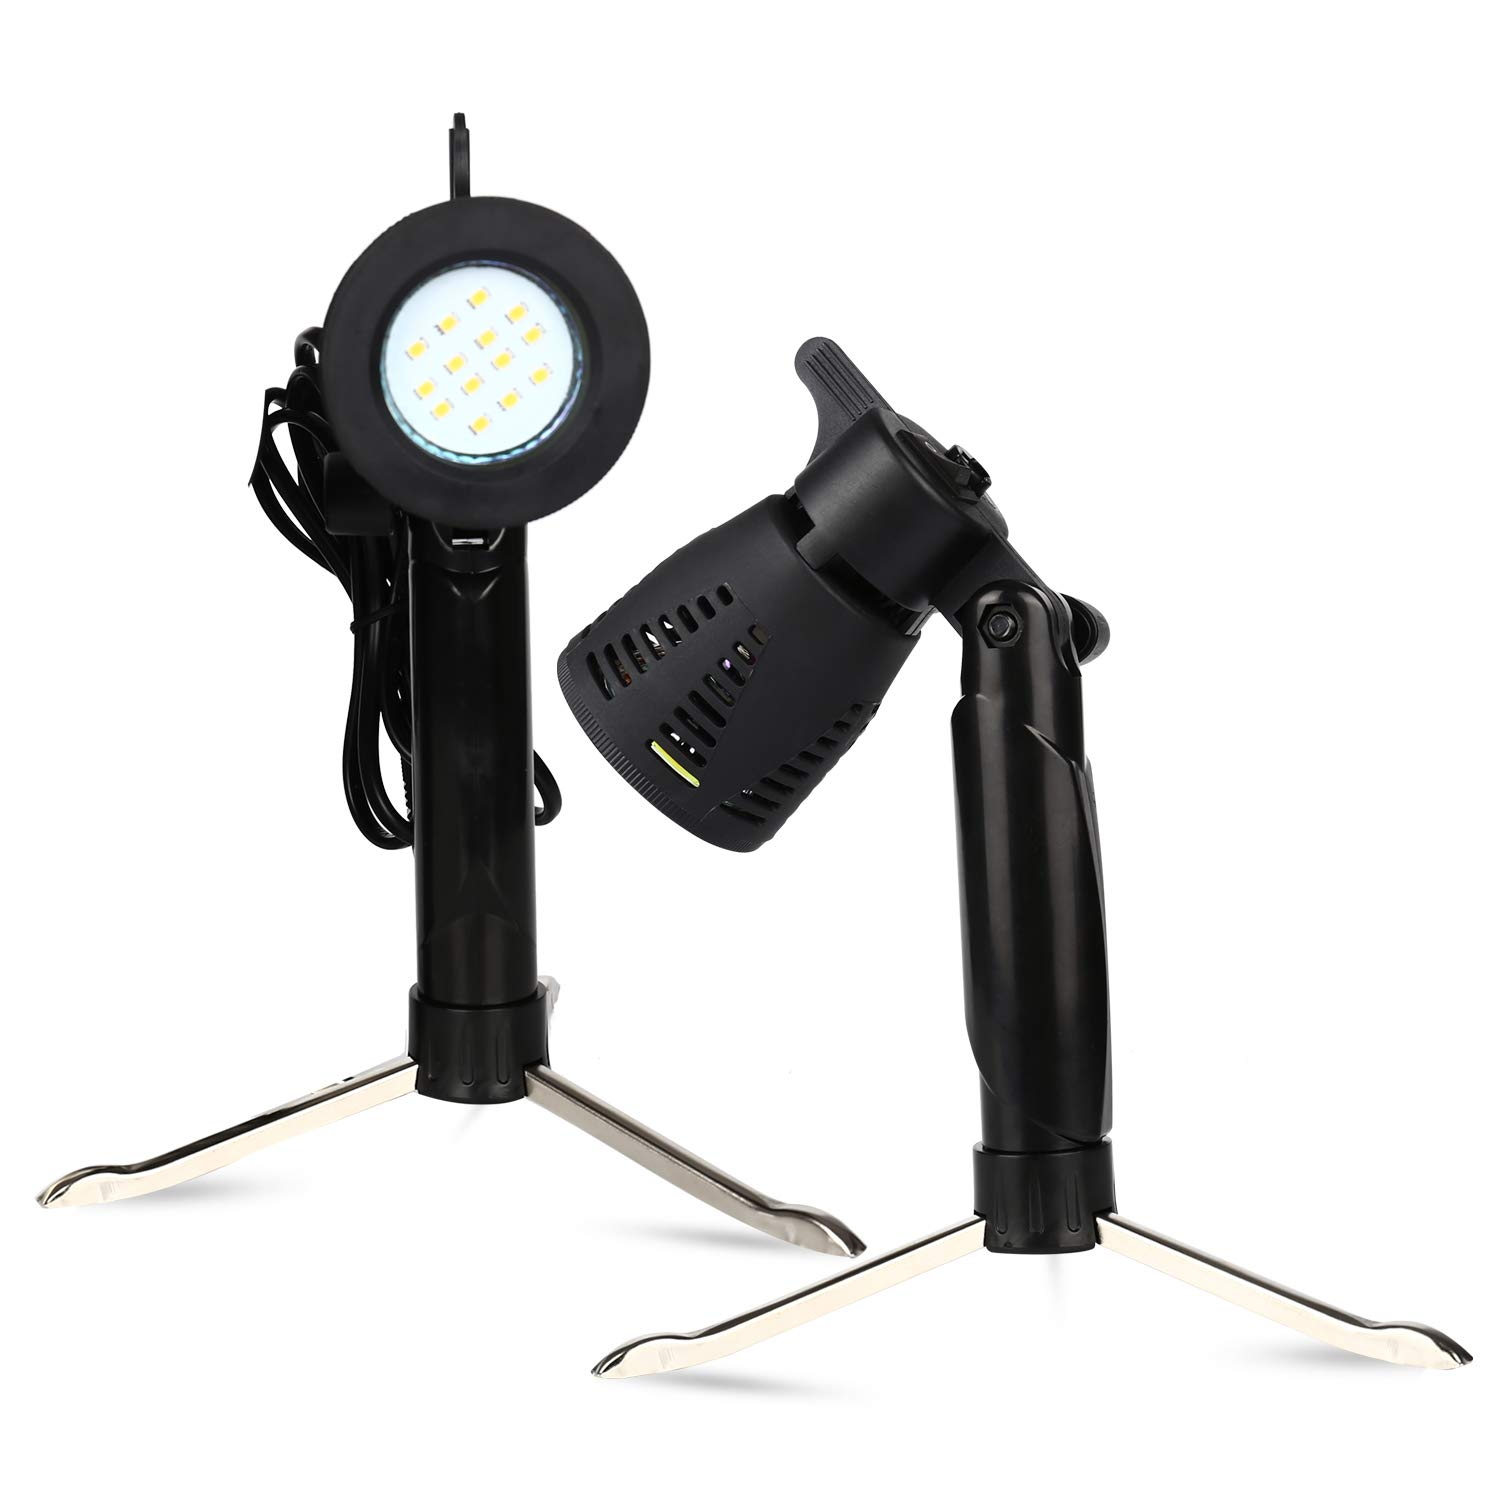 2 PCS Photography Continuous LED Portable Light Lamp for Table Top Studio Photography Photo Studio ... by YC°